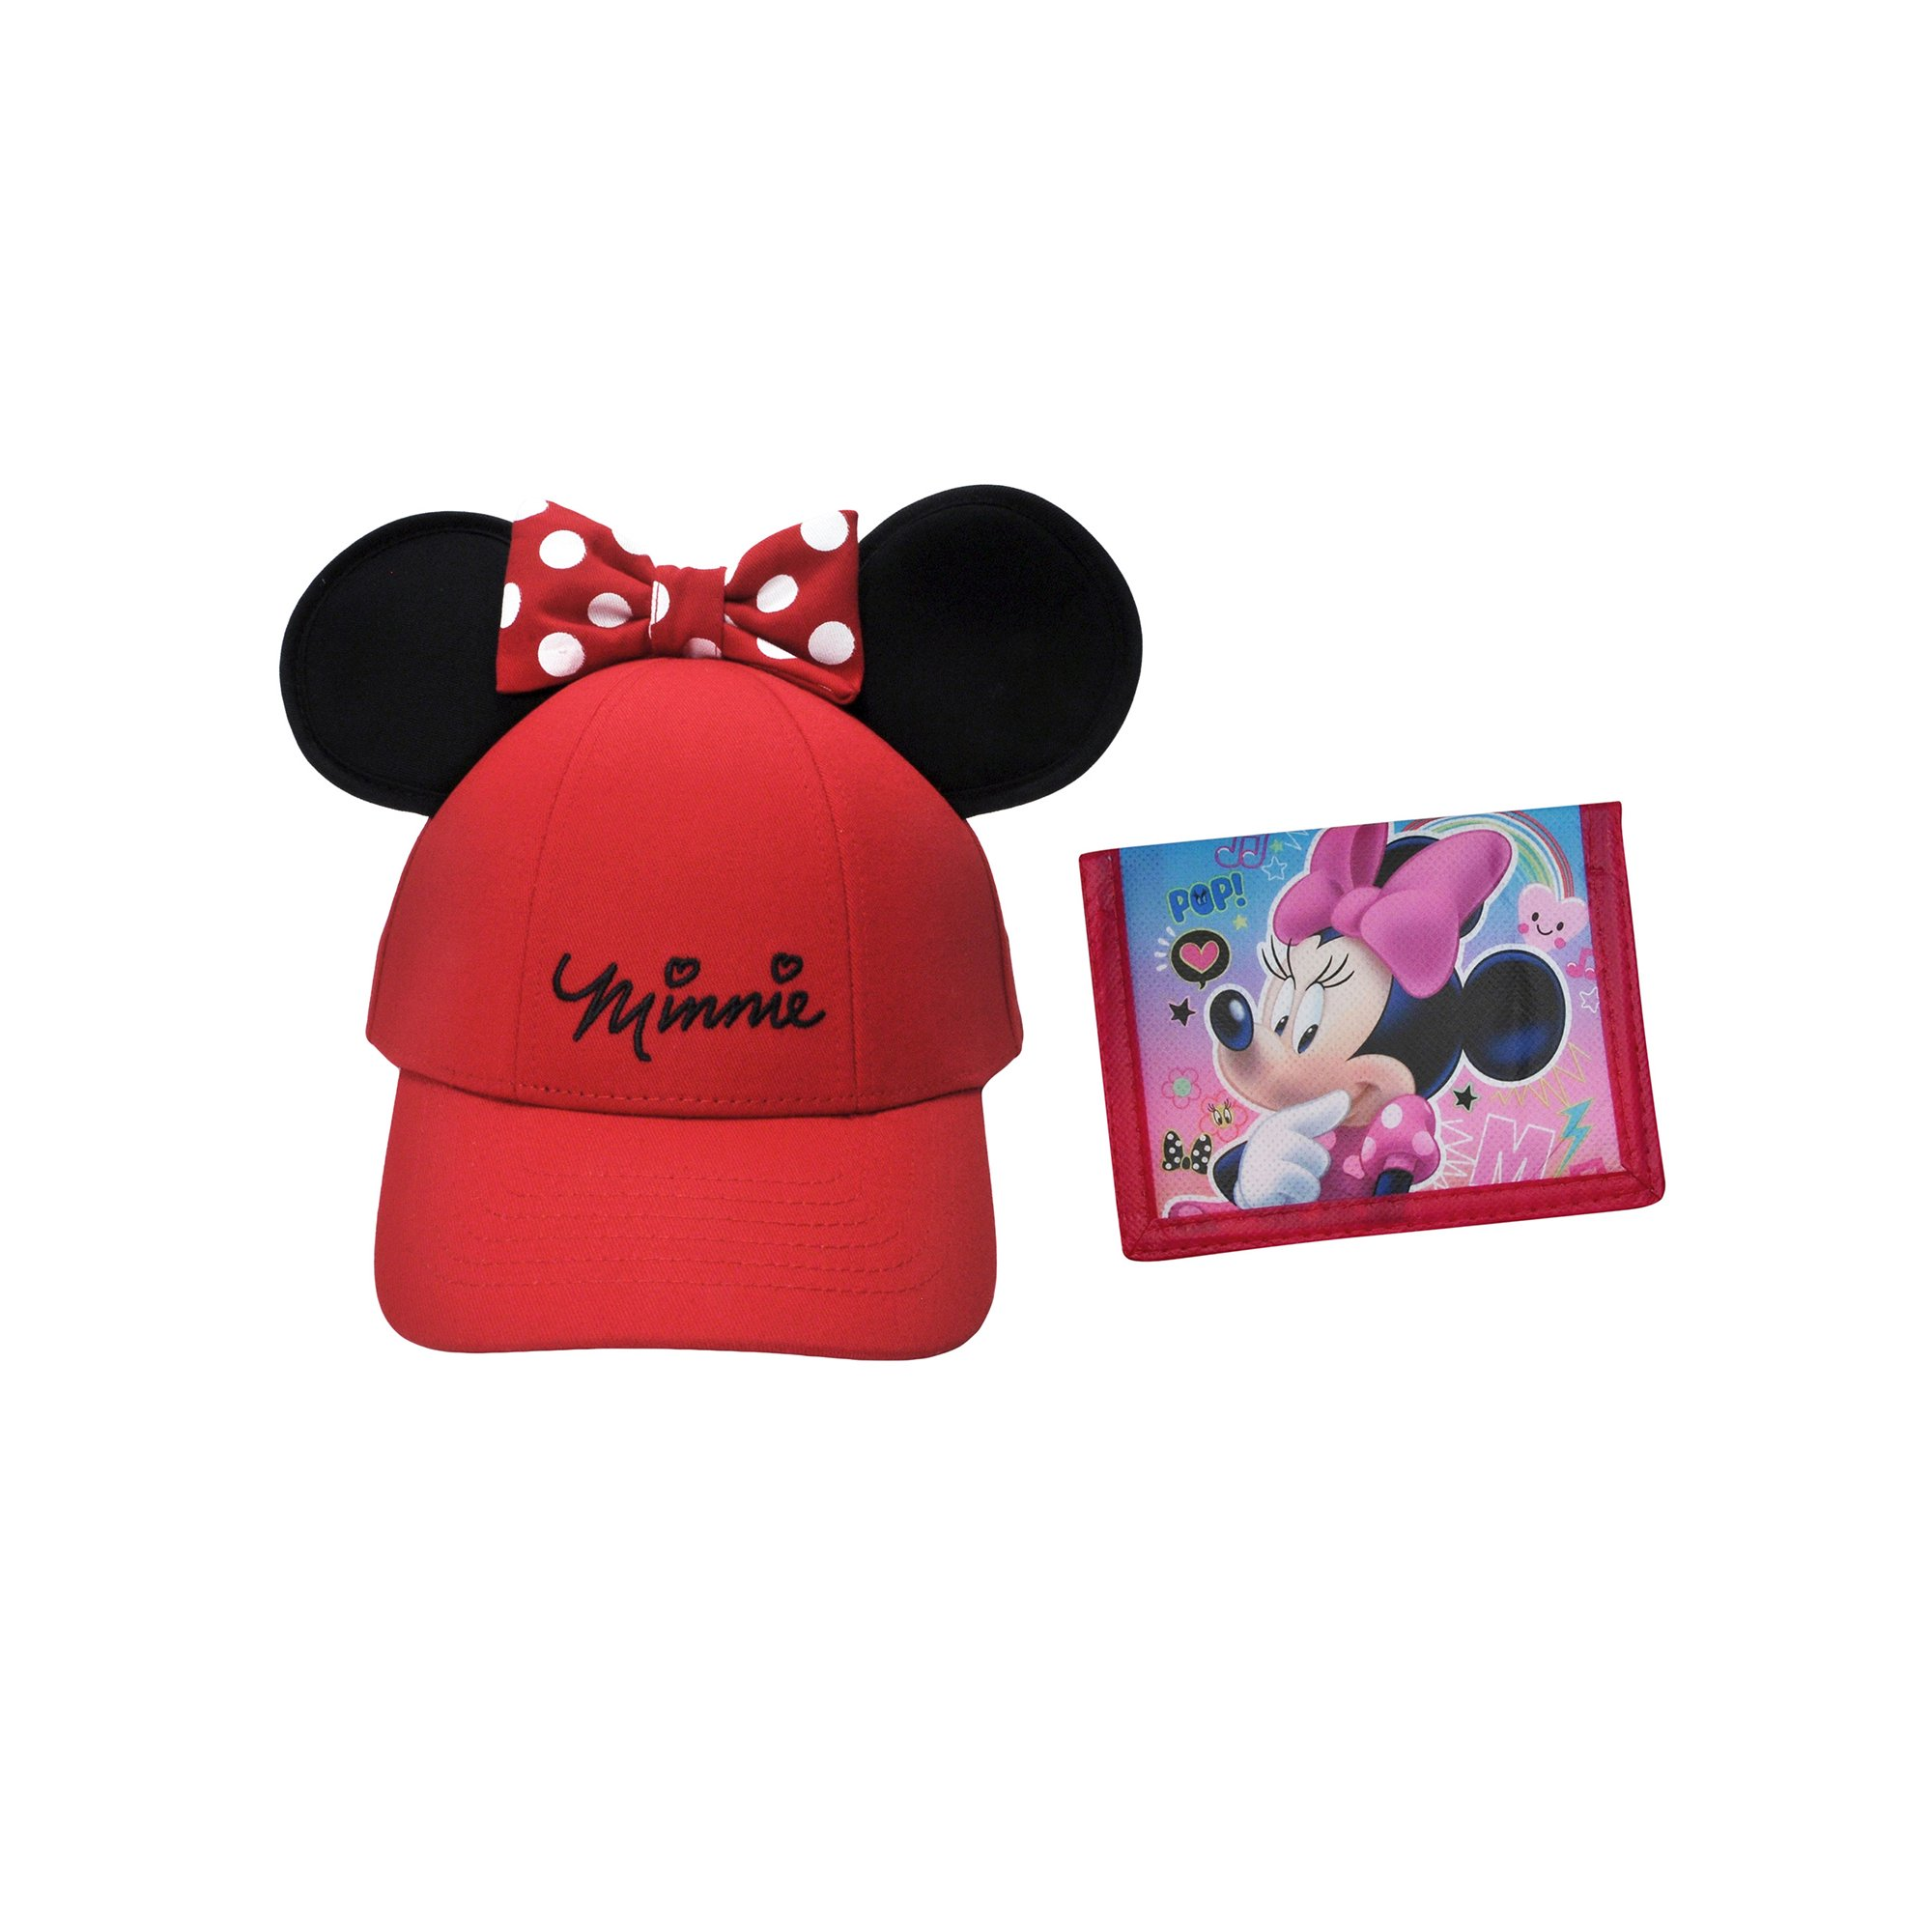 36a3e37a418 Girls Red Minnie Mouse Ears Hat with Minnie Wallet 2Pcs